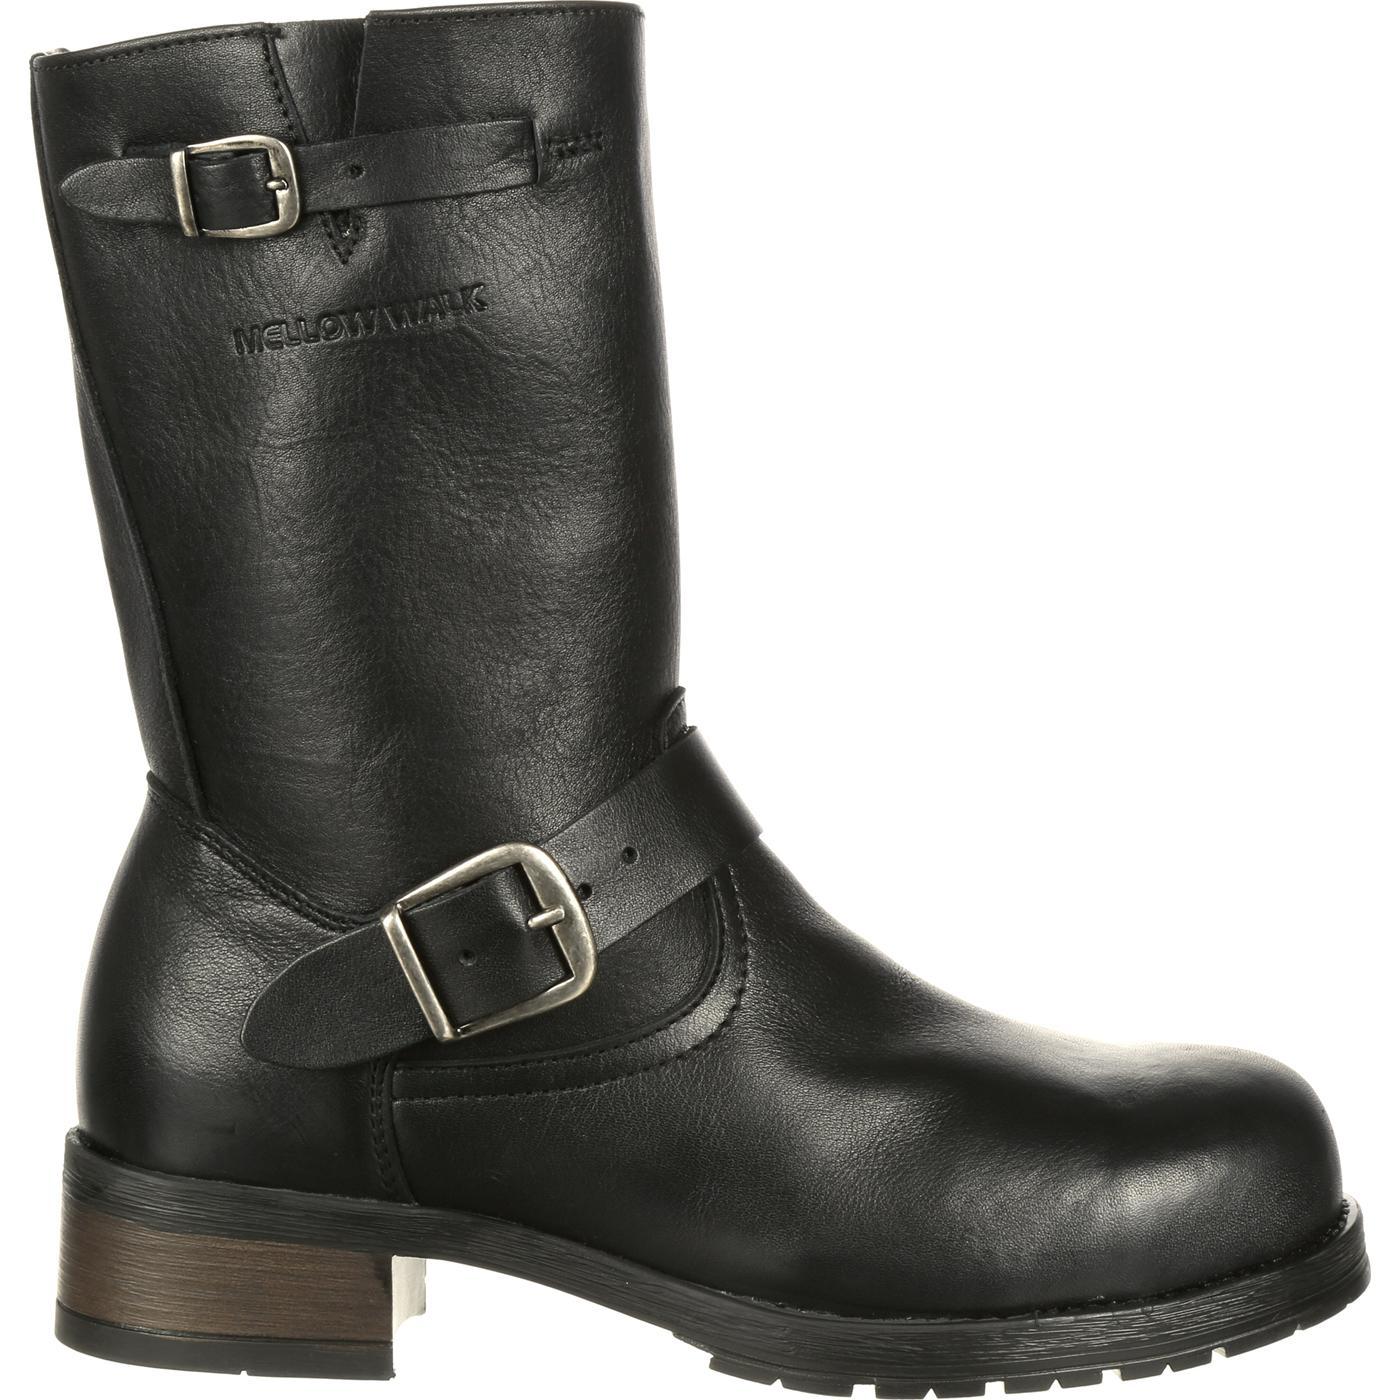 c0f0f2db302 Mellow Walk Vanessa Women's Steel Toe CSA-Approved Puncture-Resistant  Engineer Boot